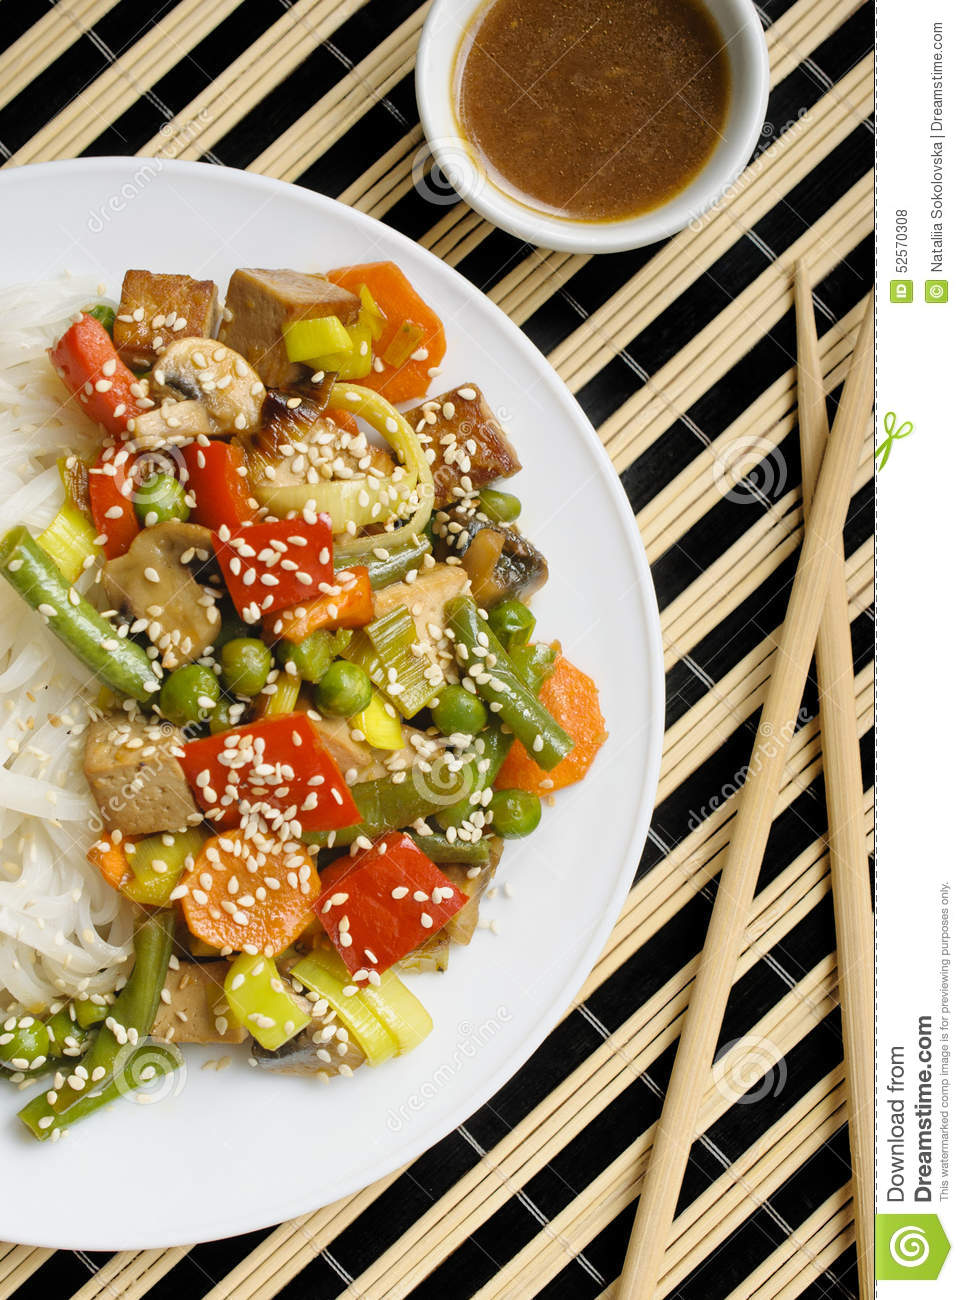 Vietnamese Noodle Salad With Stir-Fried Tofu And Vegetables Recipe ...